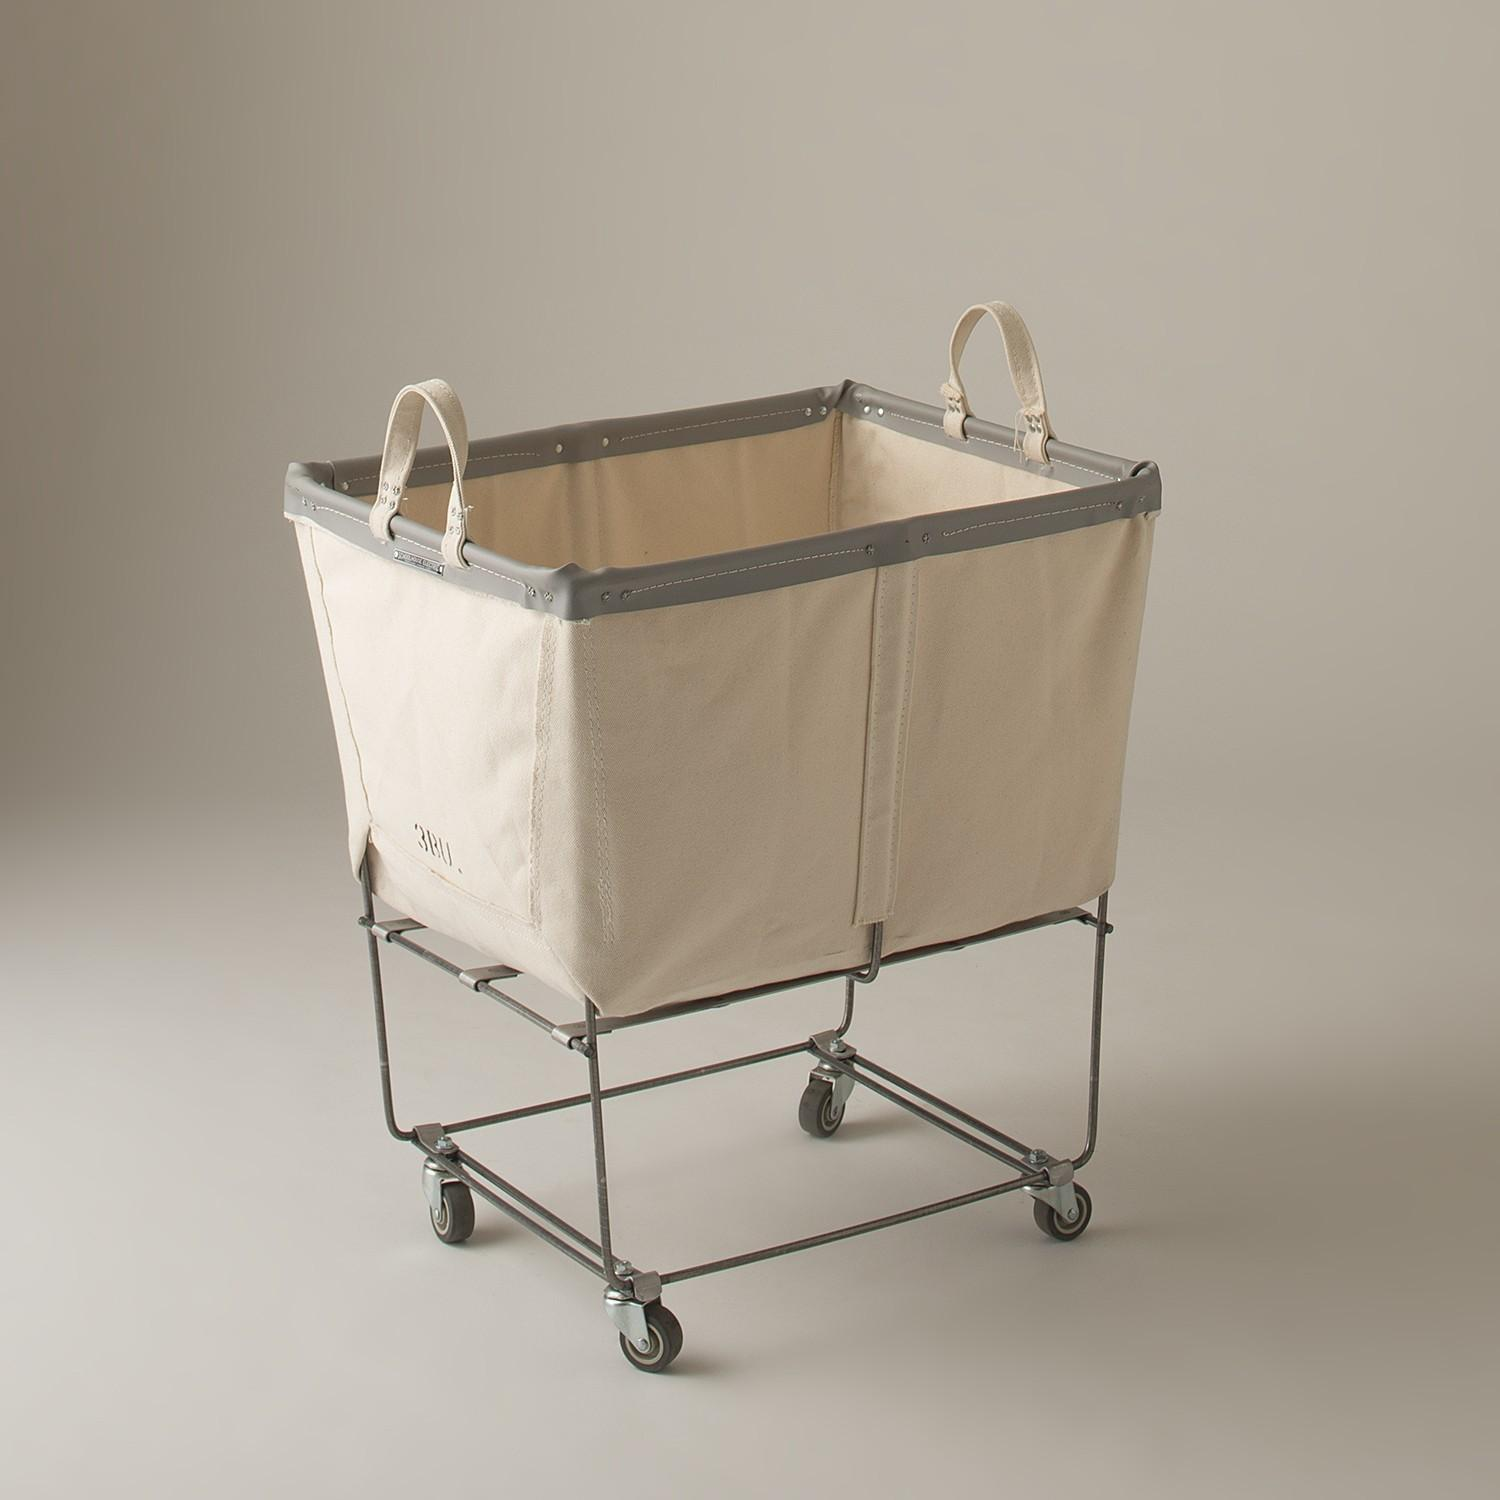 Easy Solution Carry Out Heavy Laundry Your